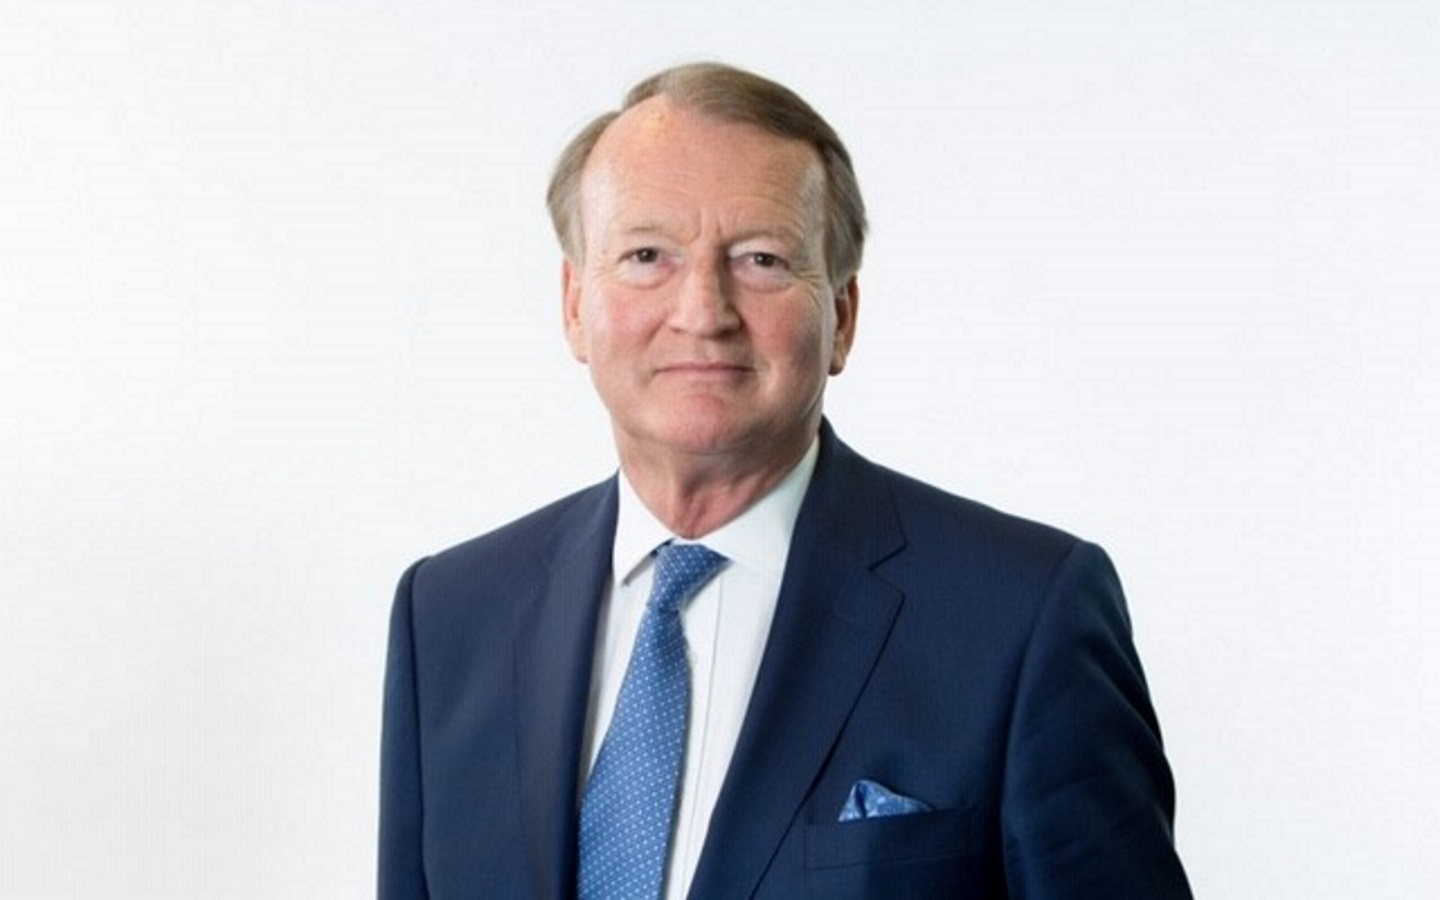 Mark Elliott to retire as Chairman in July 2019, Neil Johnson appointed to succeed him